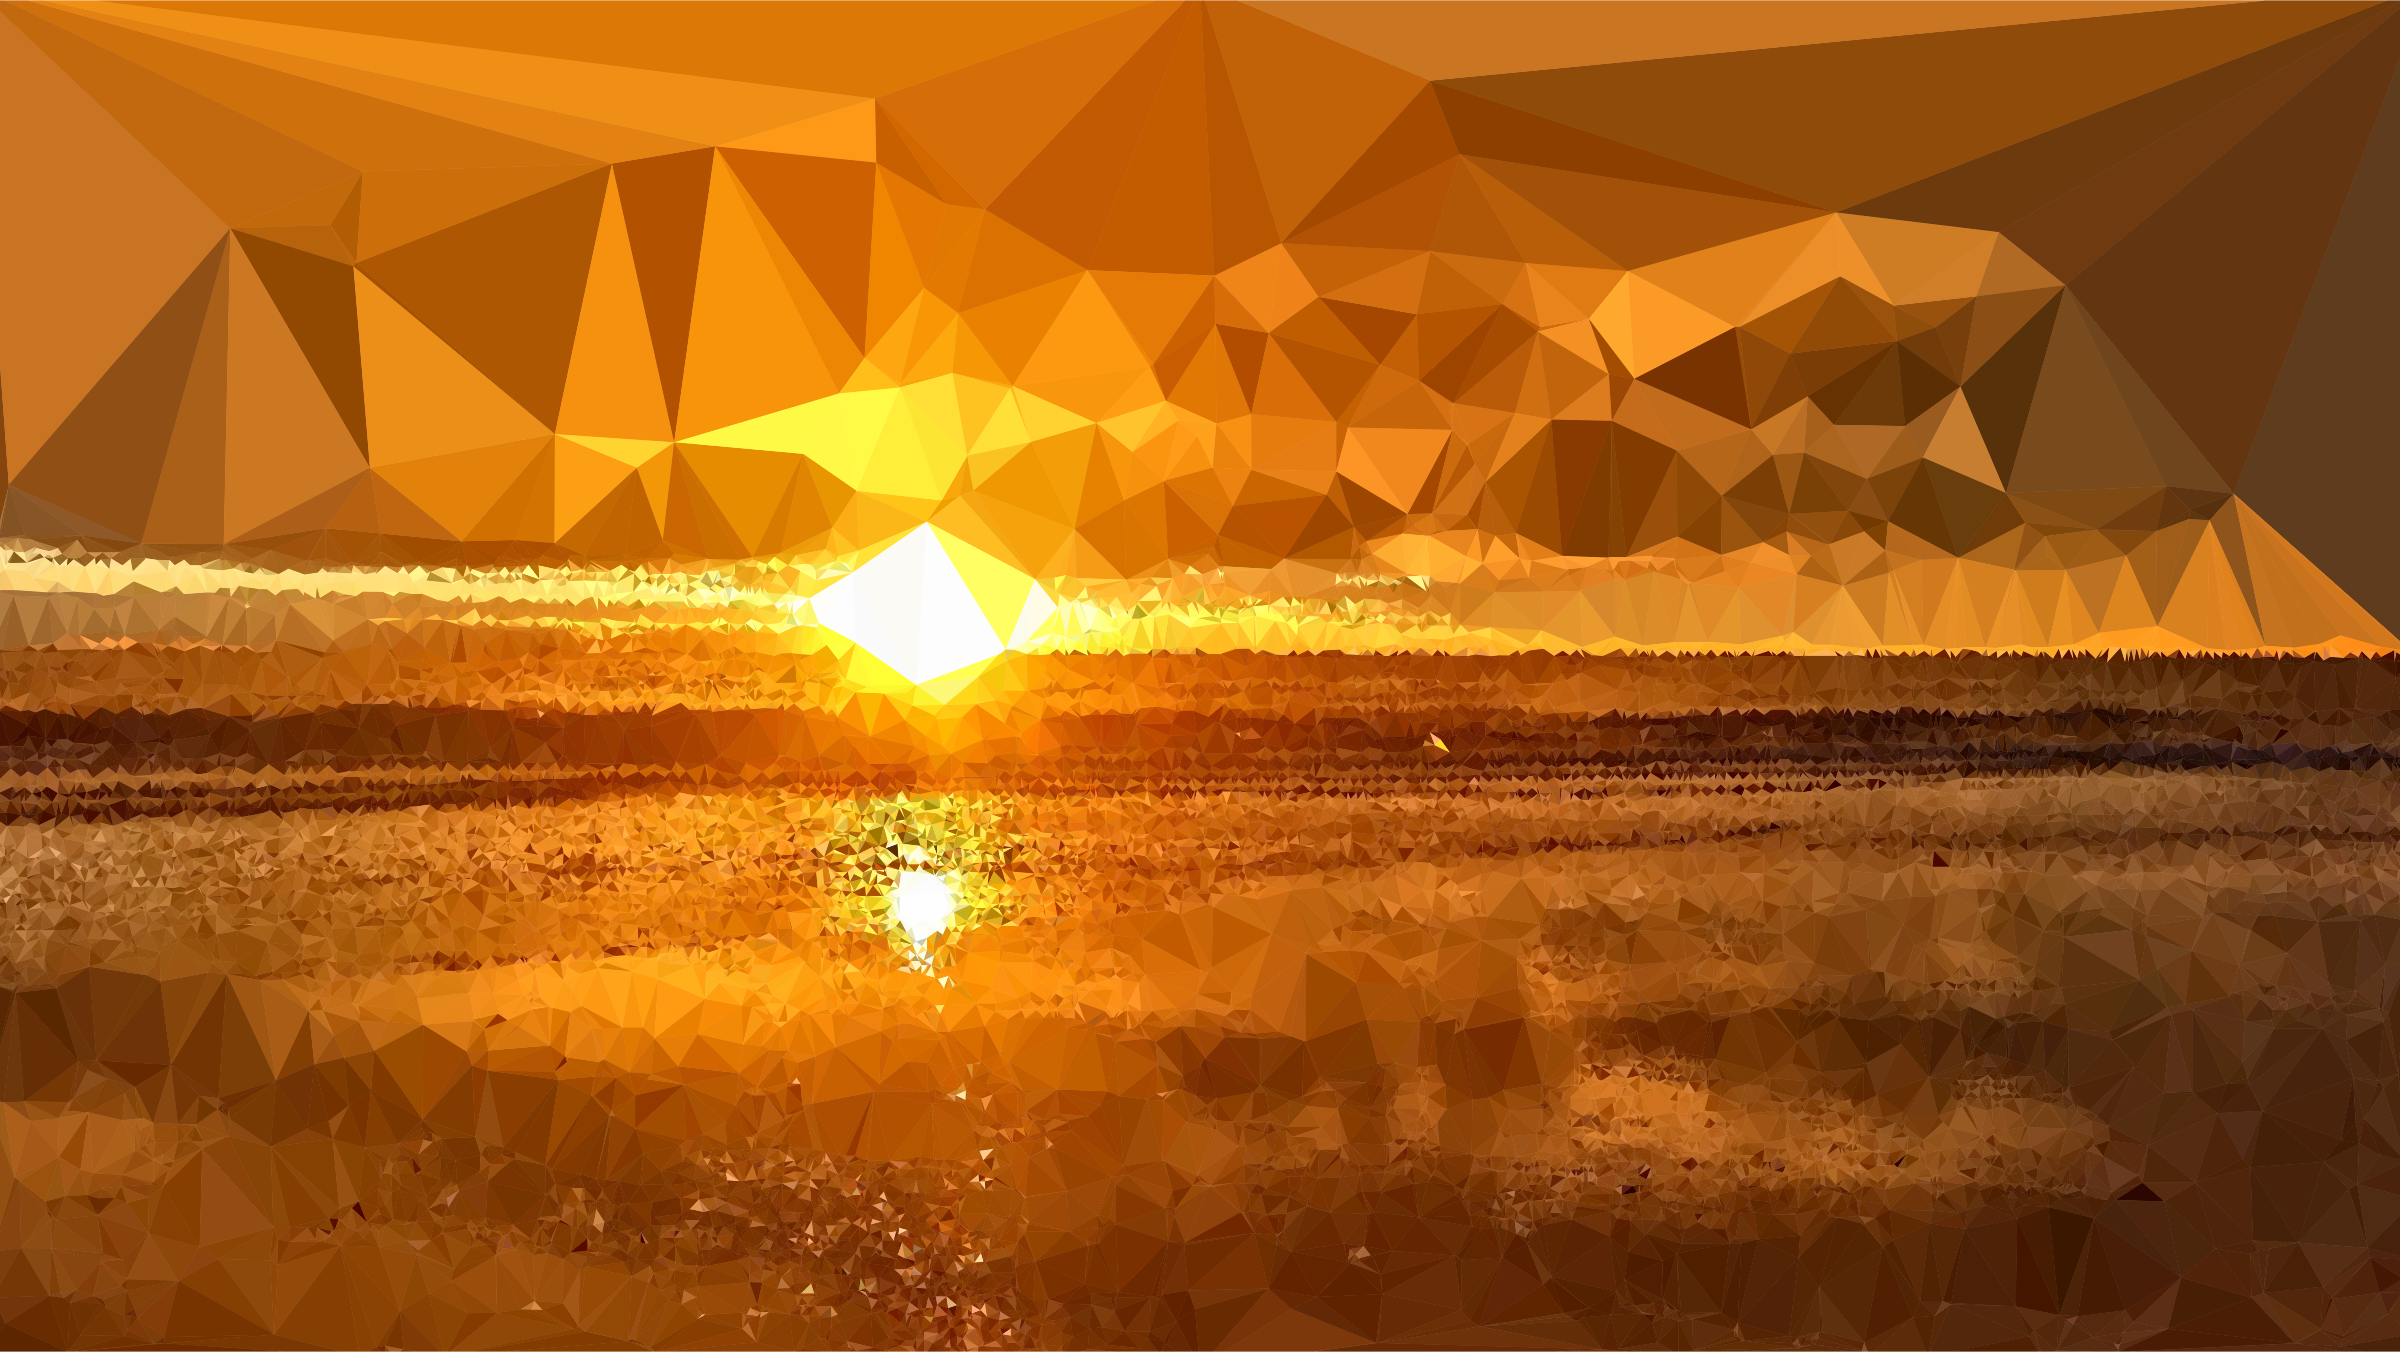 Low Poly Lens Flare Sunset by GDJ